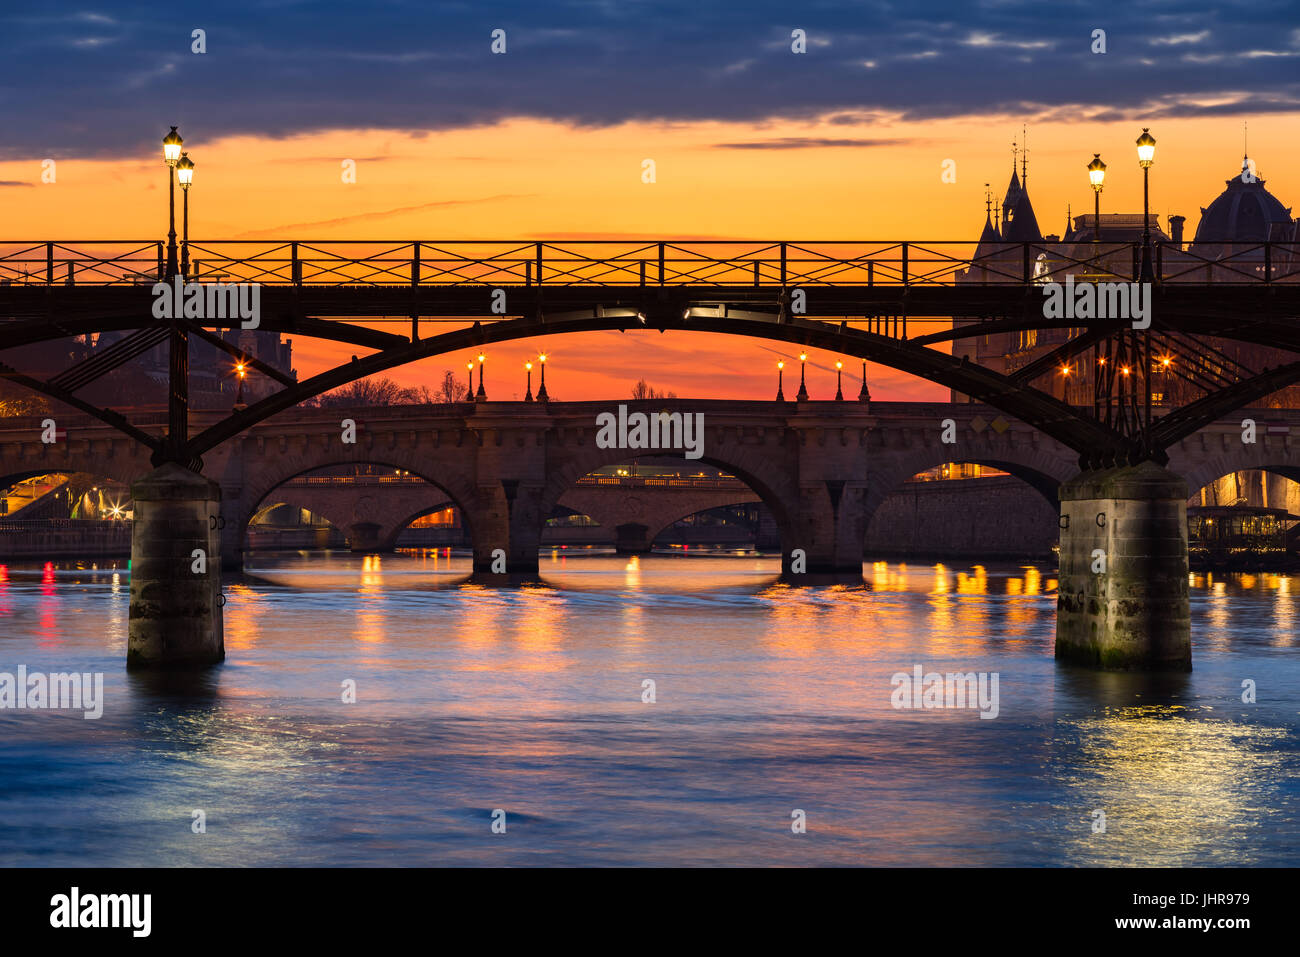 Sunrise on the Pont des Art, Pont Neuf and the Seine River Banks. 1st Arrondissement, Paris, France Stock Photo